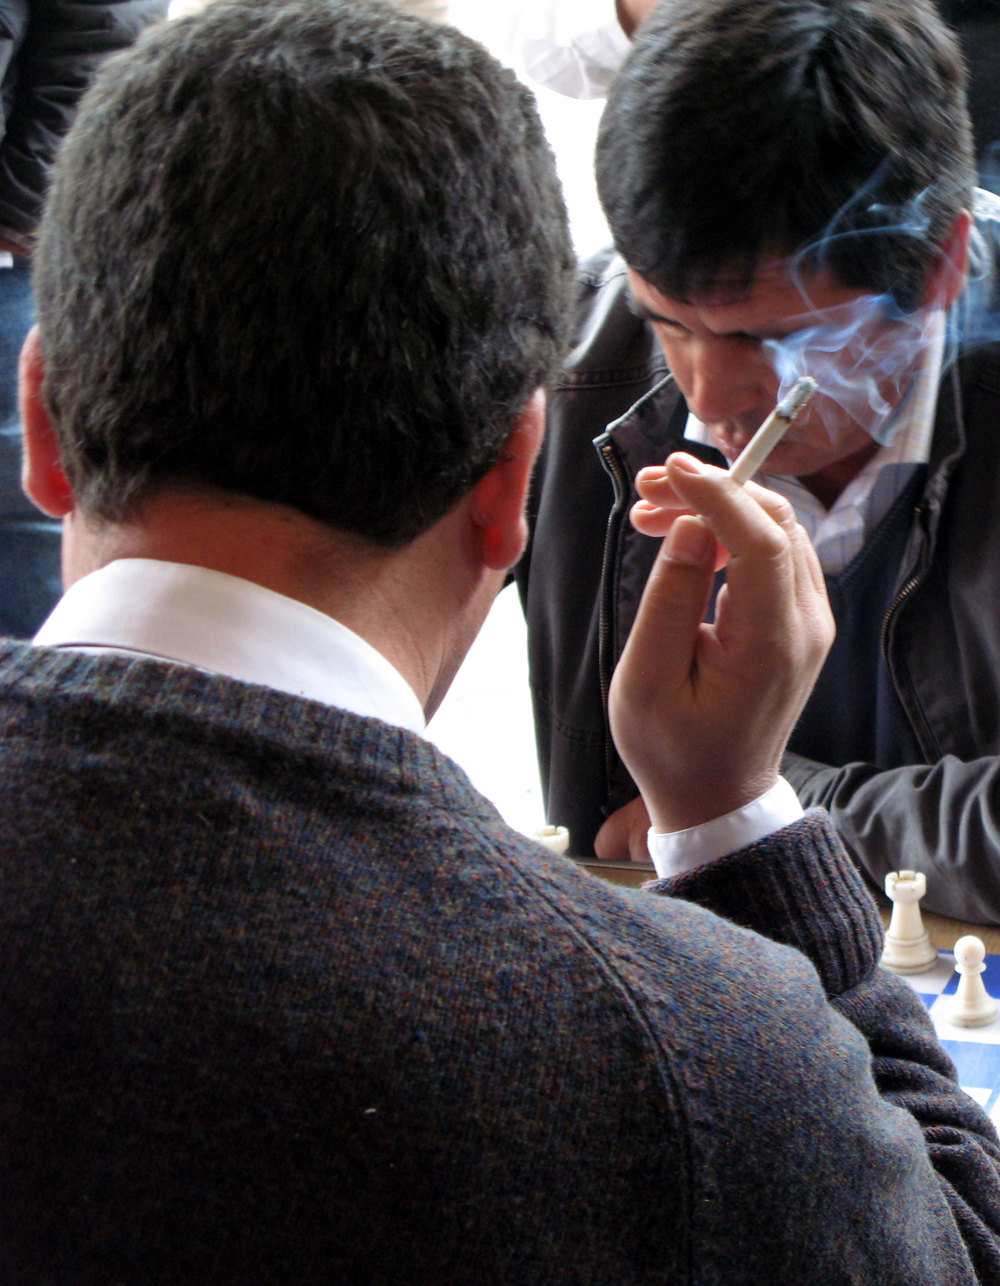 A player smokes to relieve the stress.